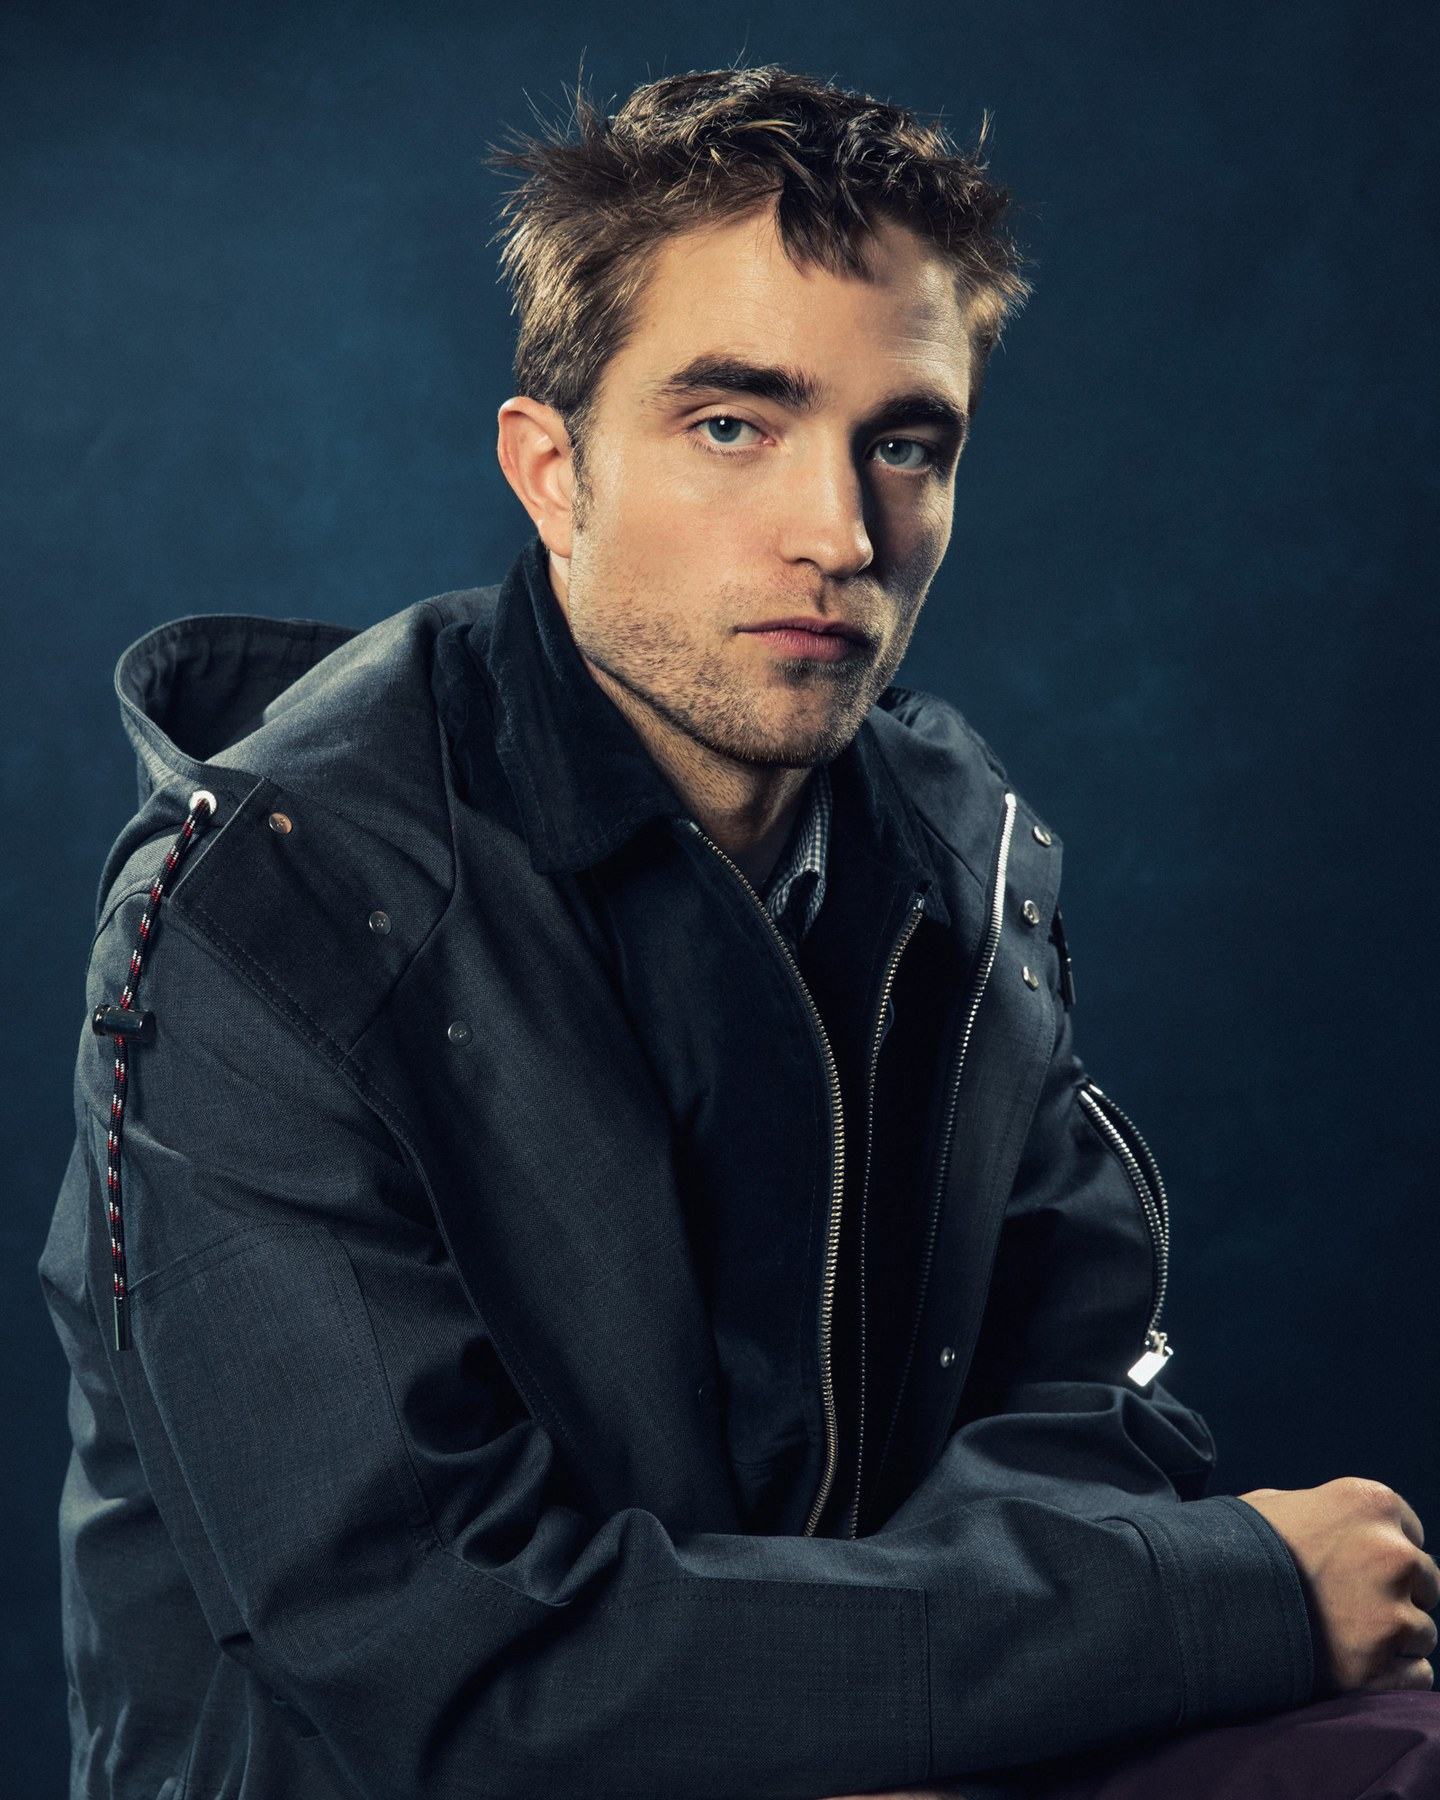 robert pattinson - photo #41